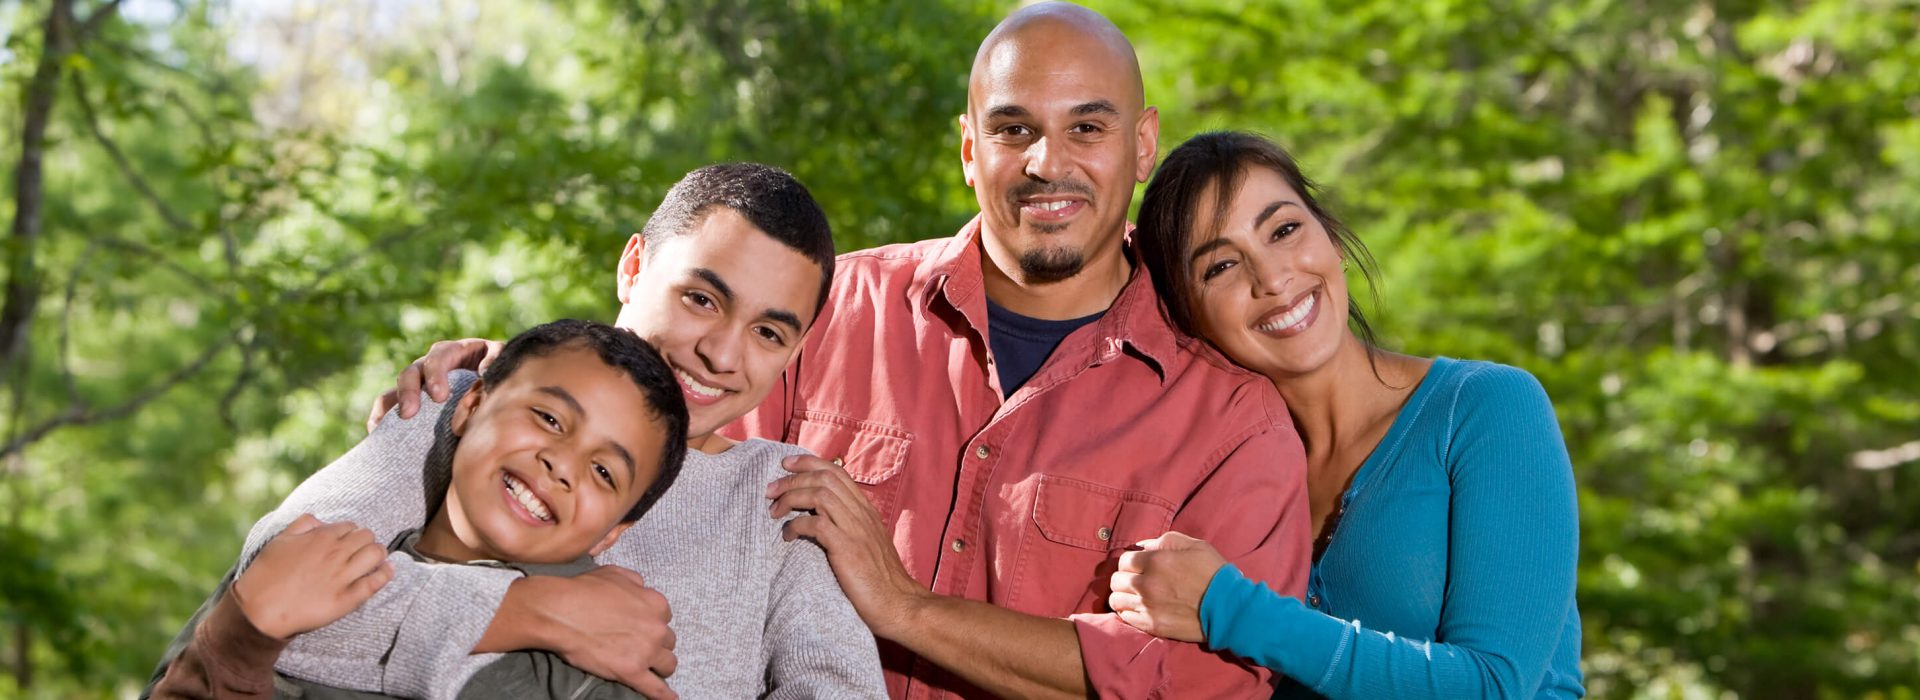 Portrait-of-Hispanic-family-with-two-boys-outdoors